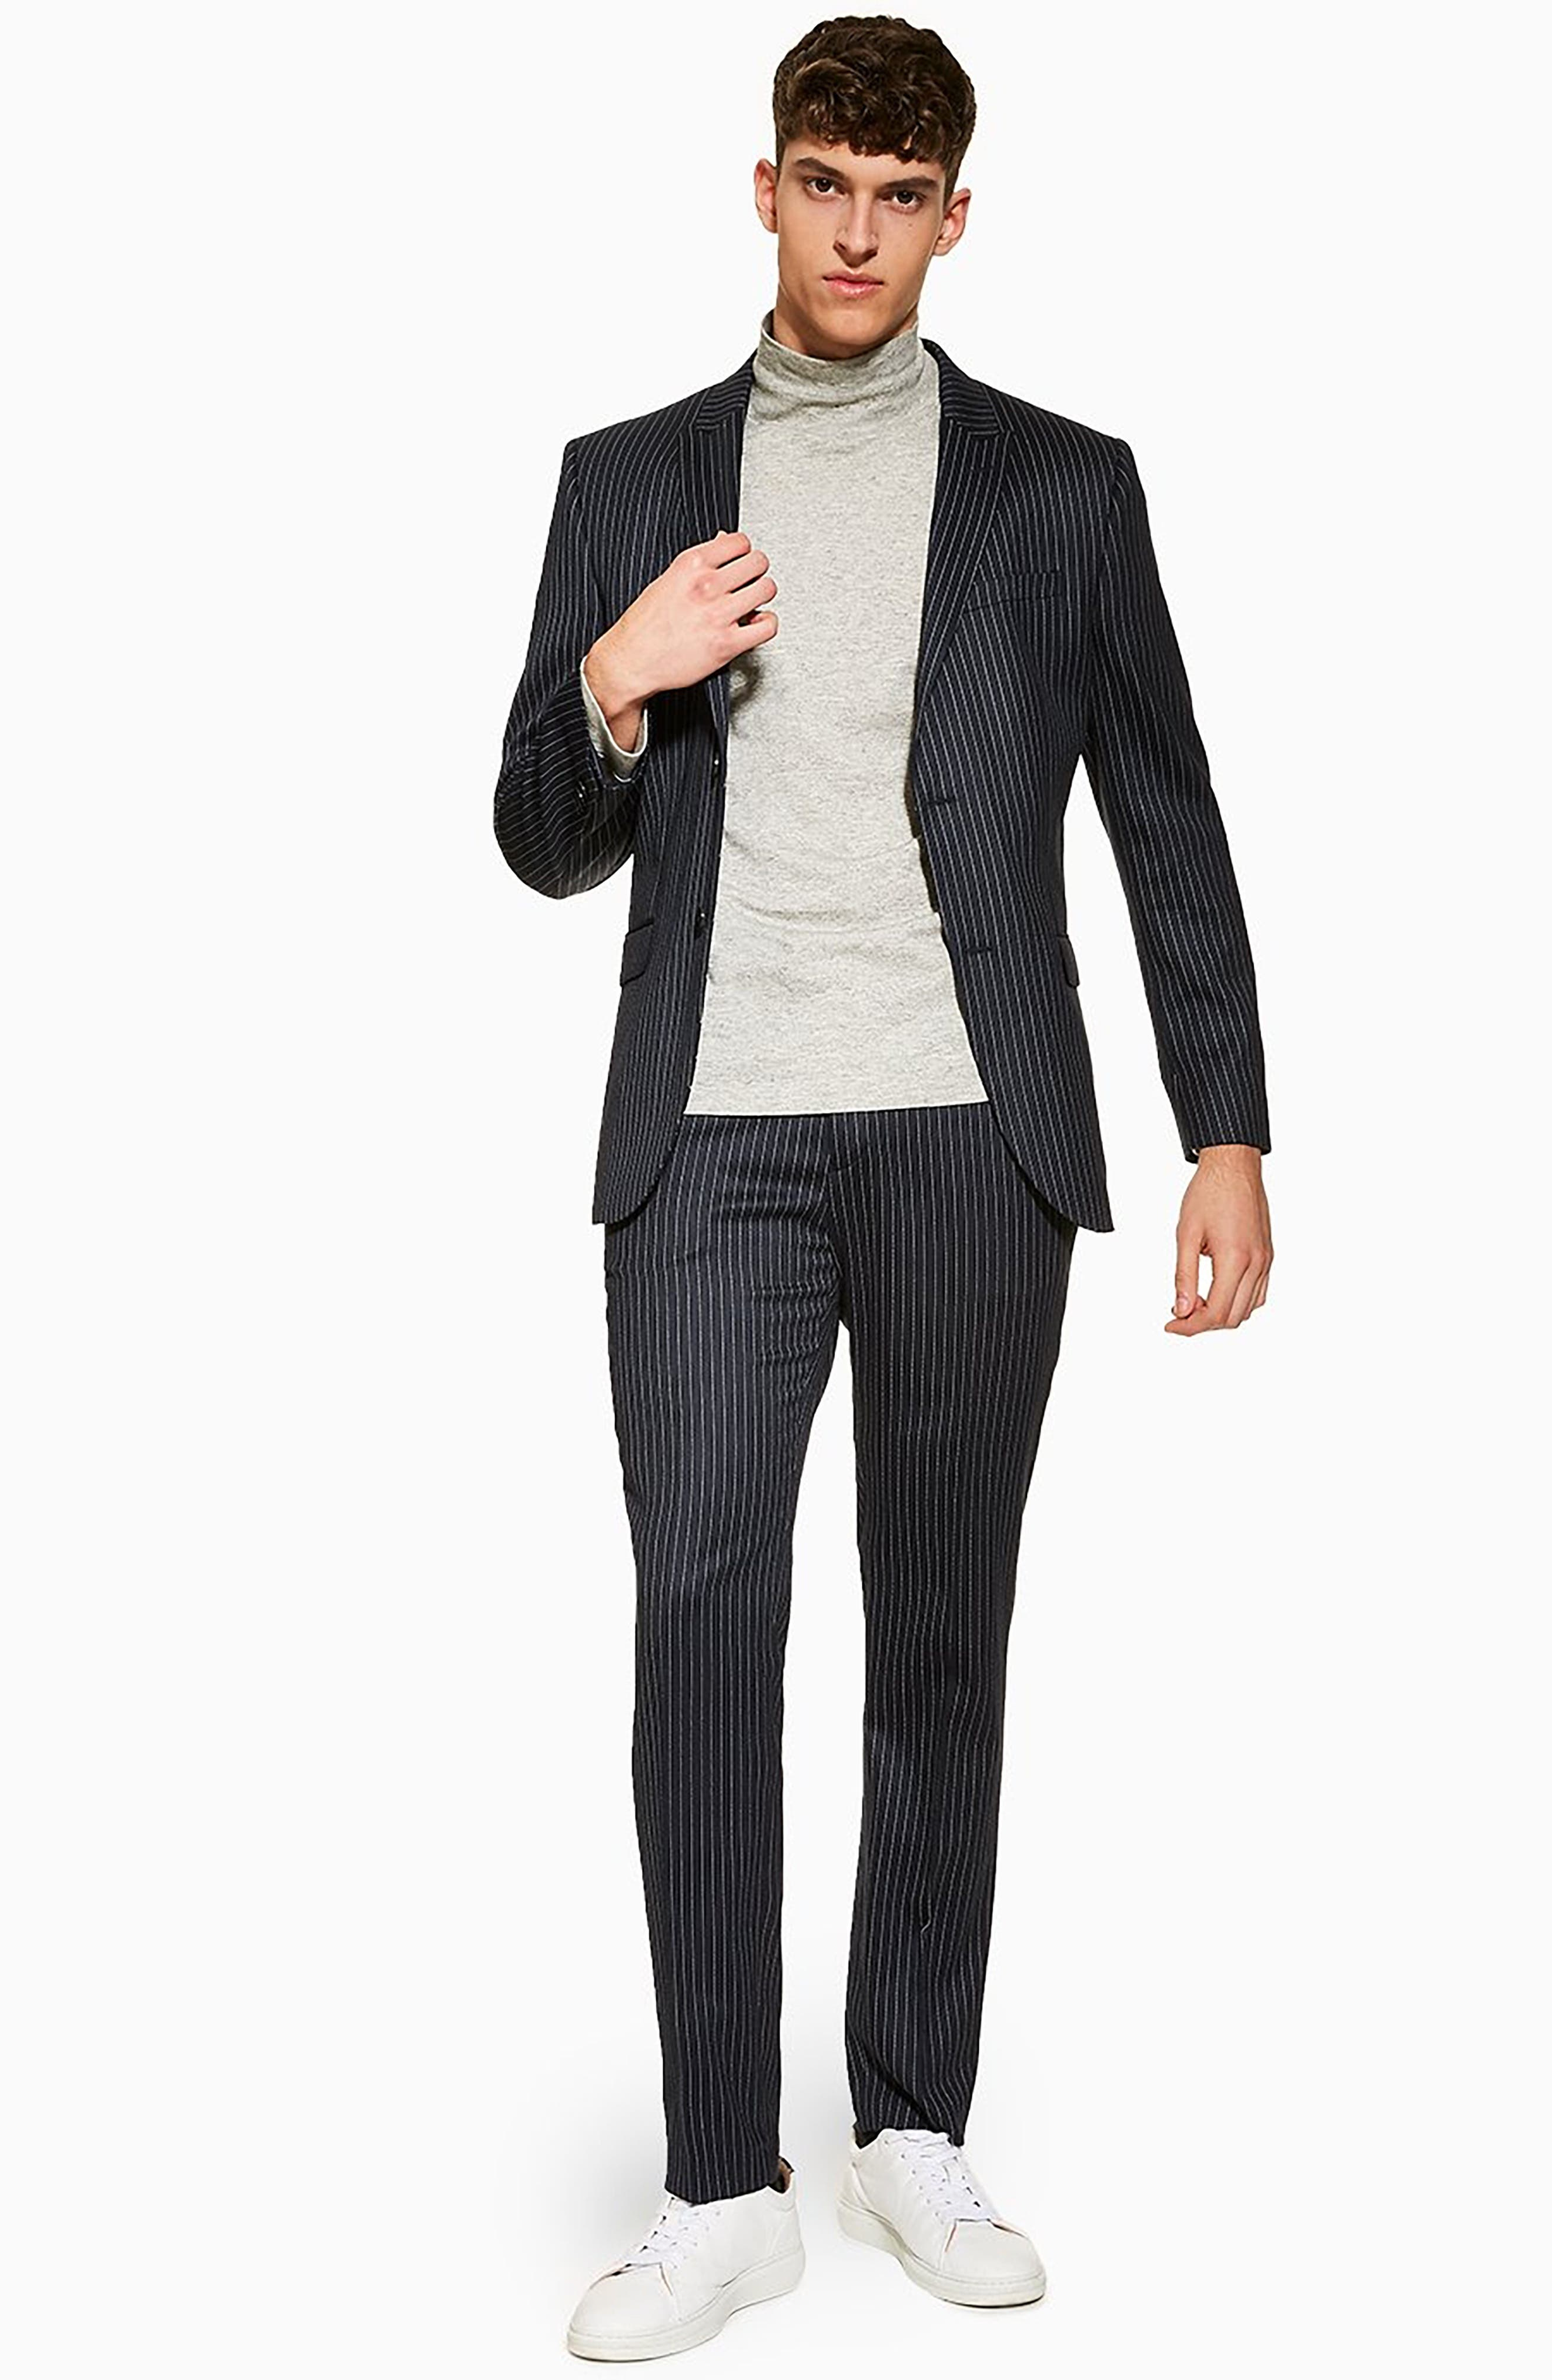 TOPMAN, Tailored Pinstripe Suit Jacket, Alternate thumbnail 6, color, NAVY BLUE